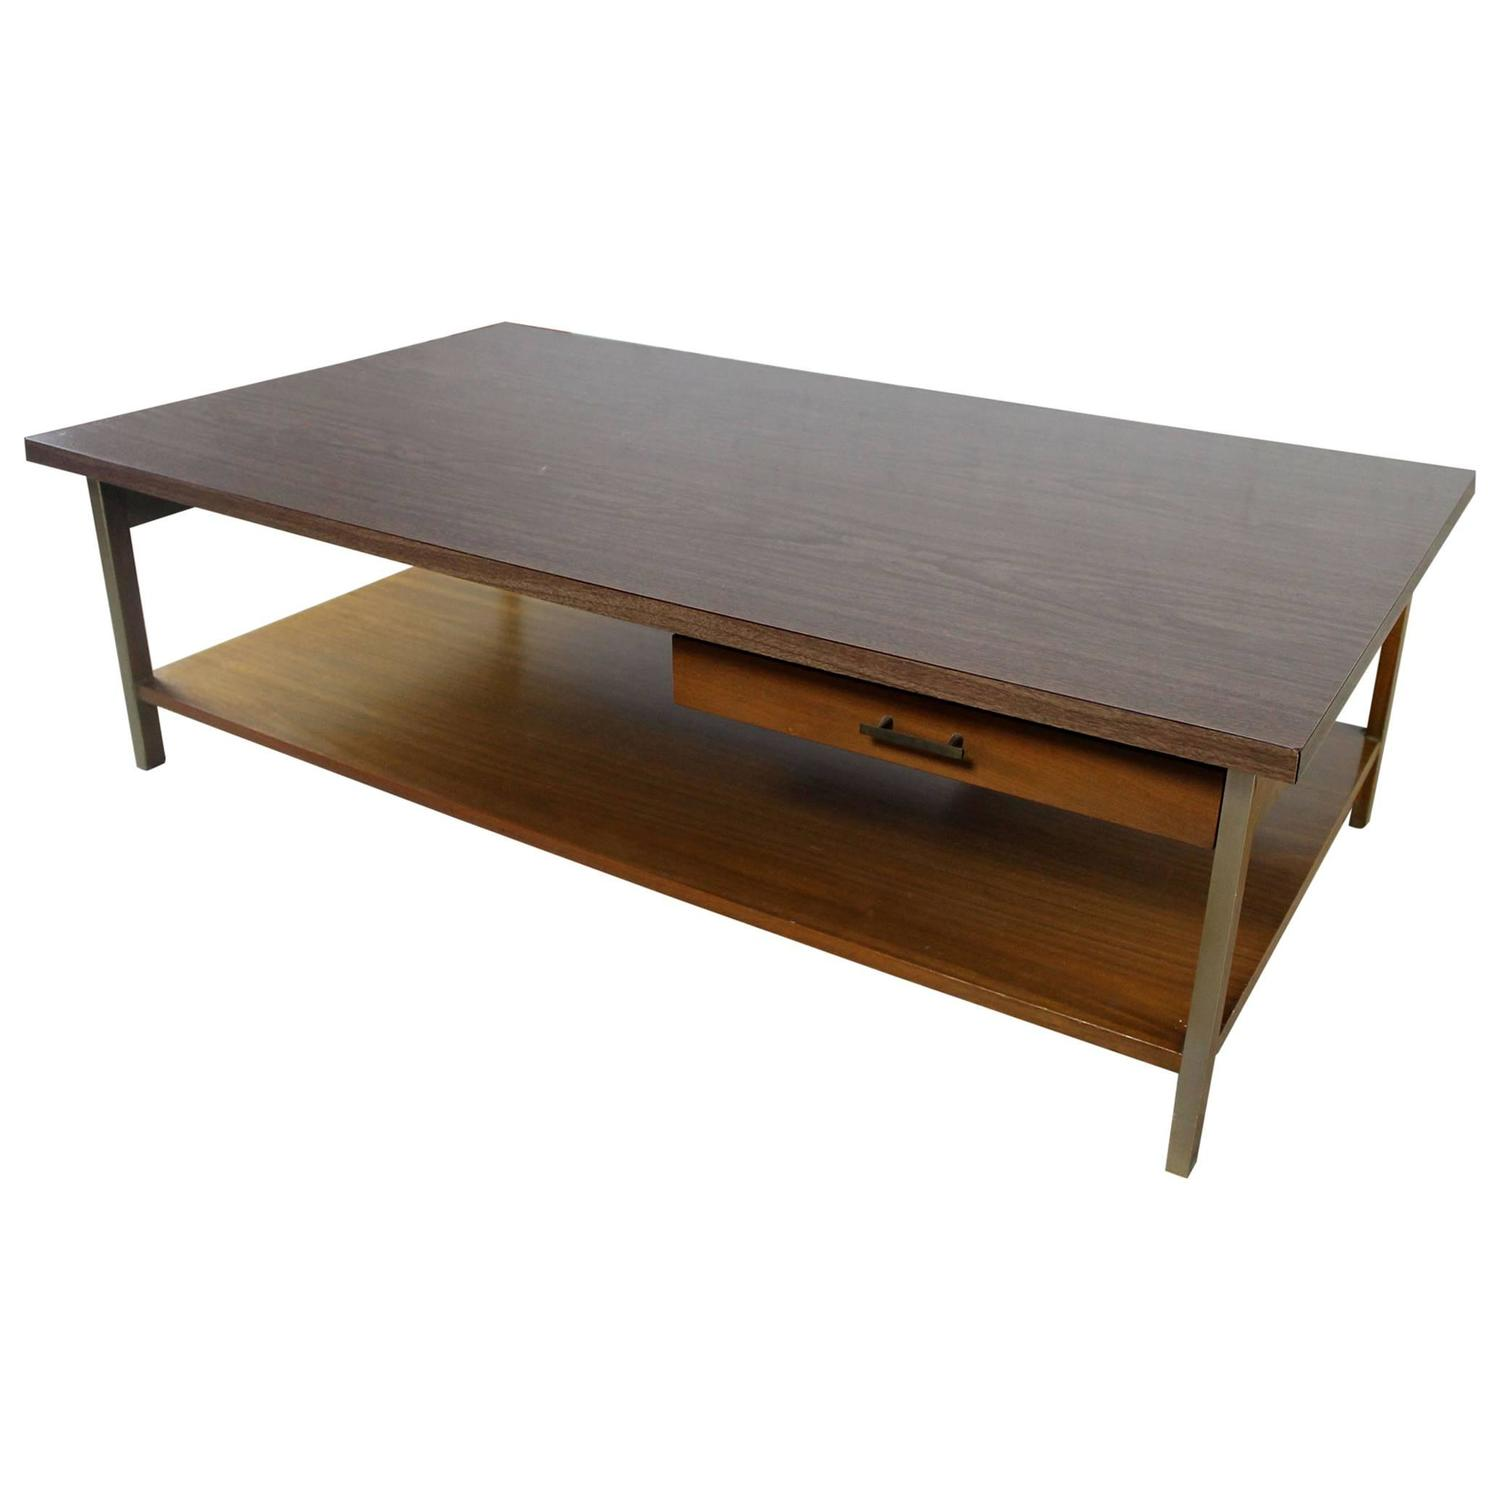 Vintage Paul McCobb Linear Group Coffee Table by Calvin For Sale